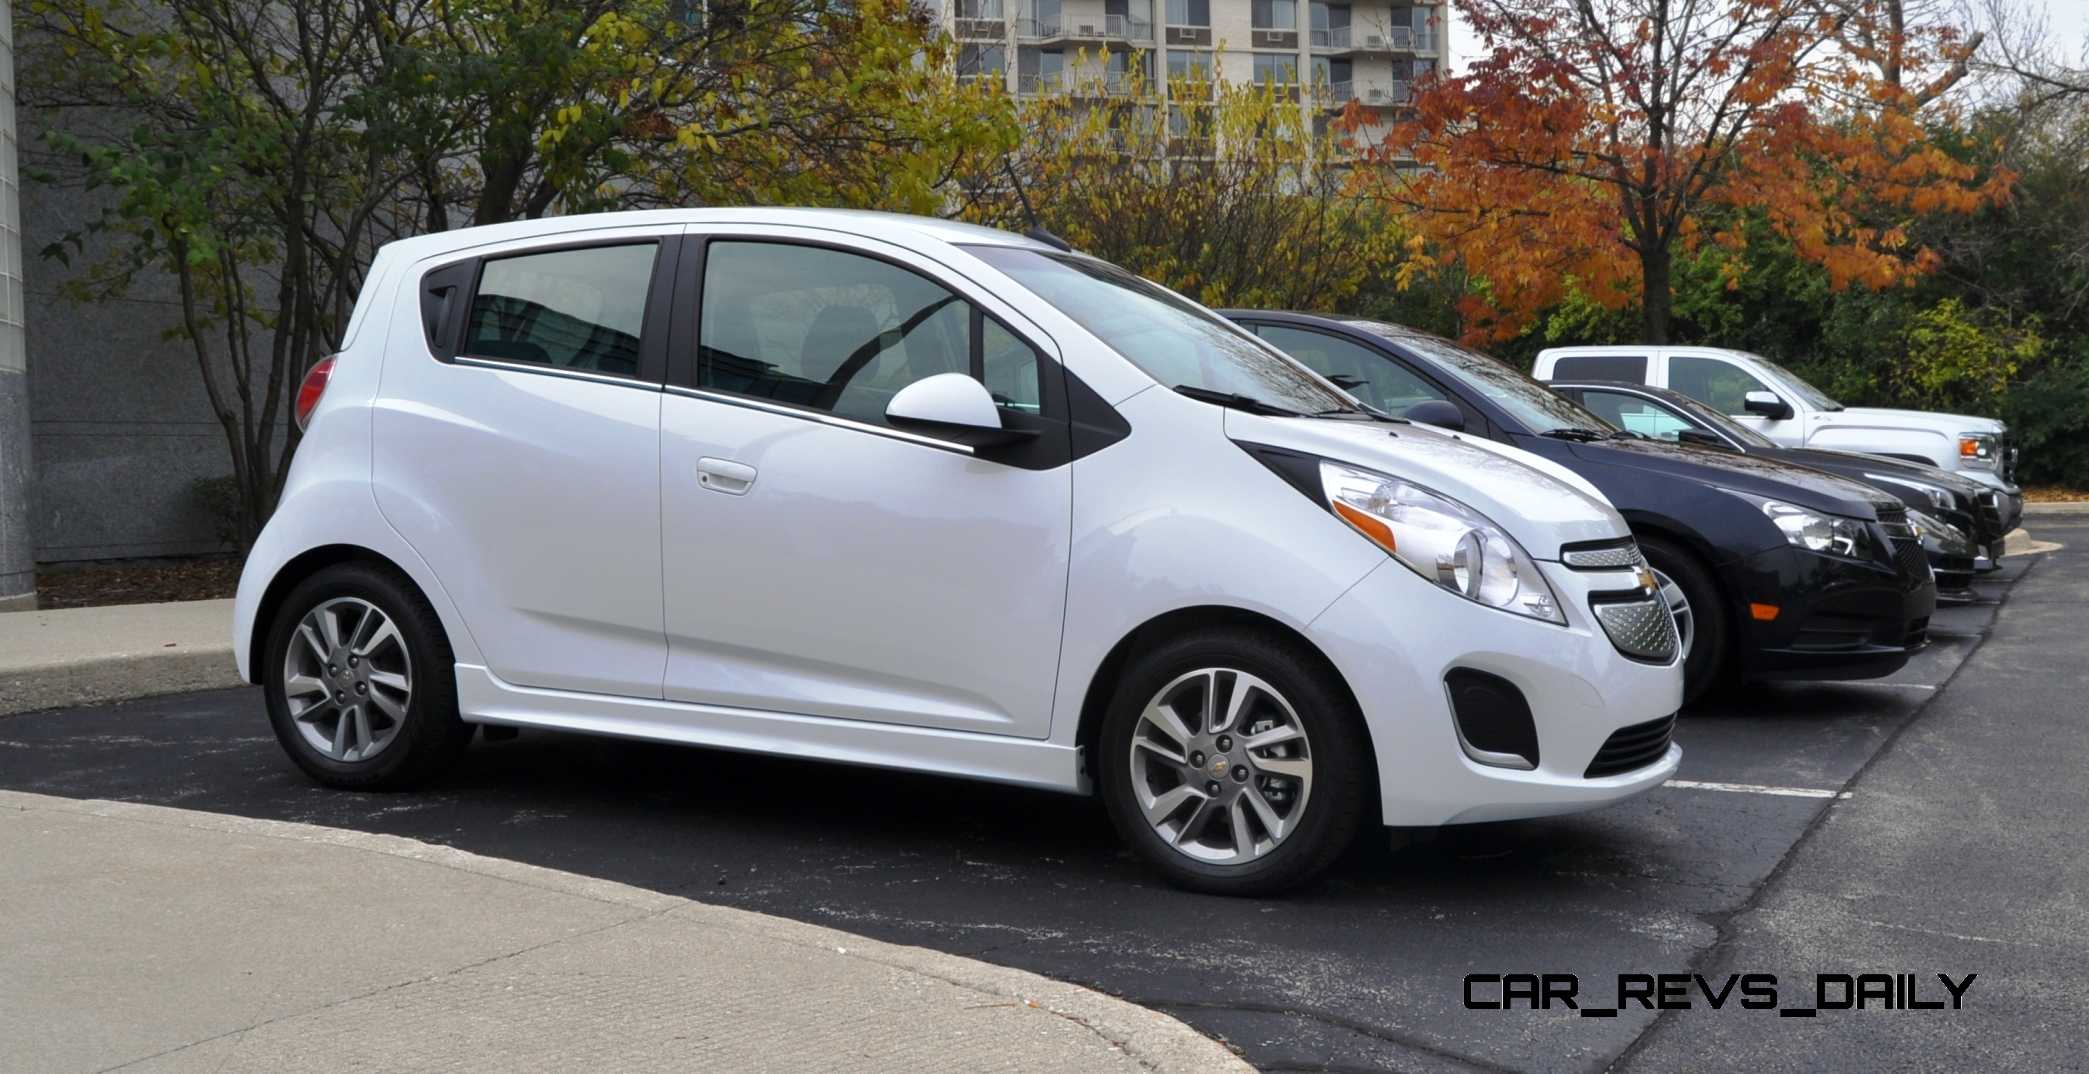 2014 chevrolet spark ev first glimpse photos inside and out looks cute in white. Black Bedroom Furniture Sets. Home Design Ideas